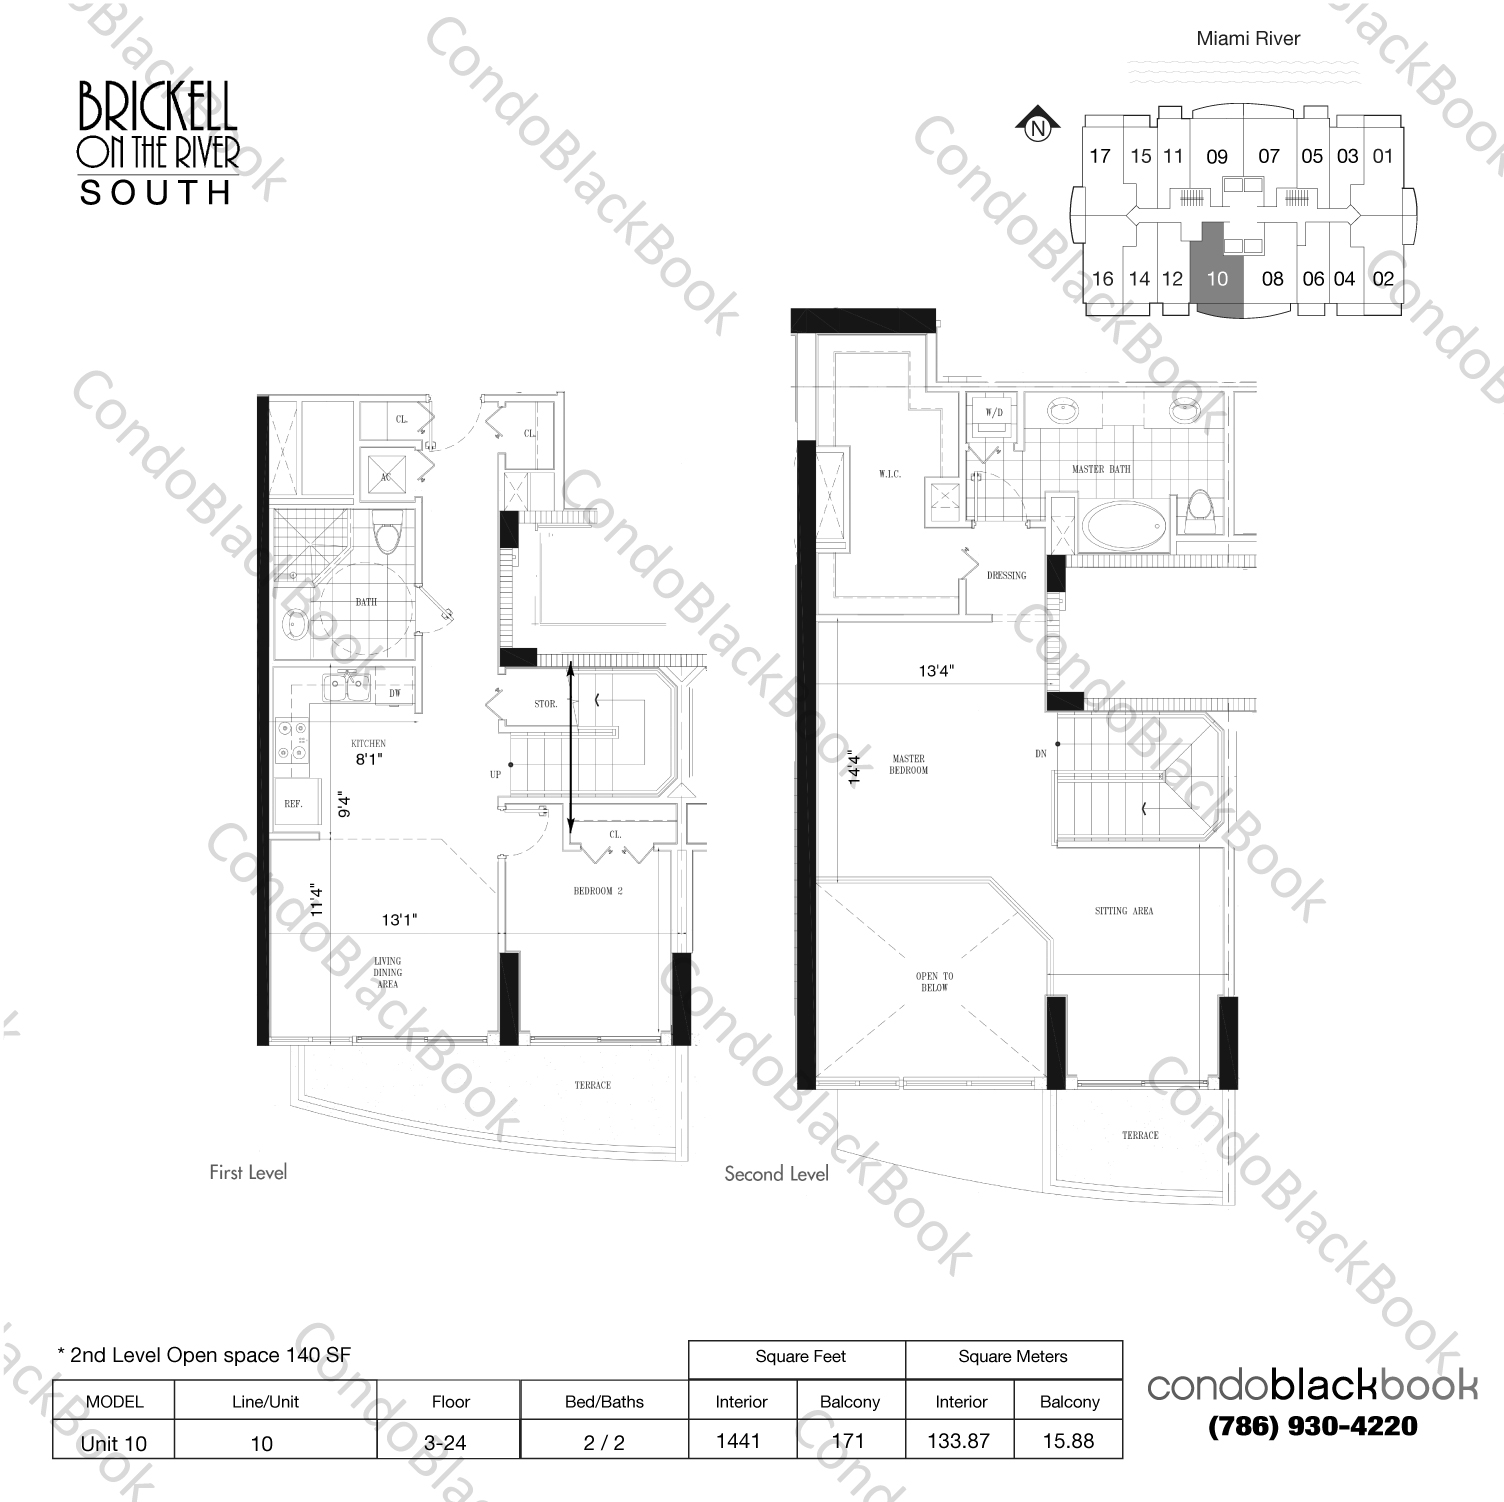 Floor plan for Brickell on the River South Brickell Miami, model Unit 10, line 10, 2/2 bedrooms, 1301 sq ft